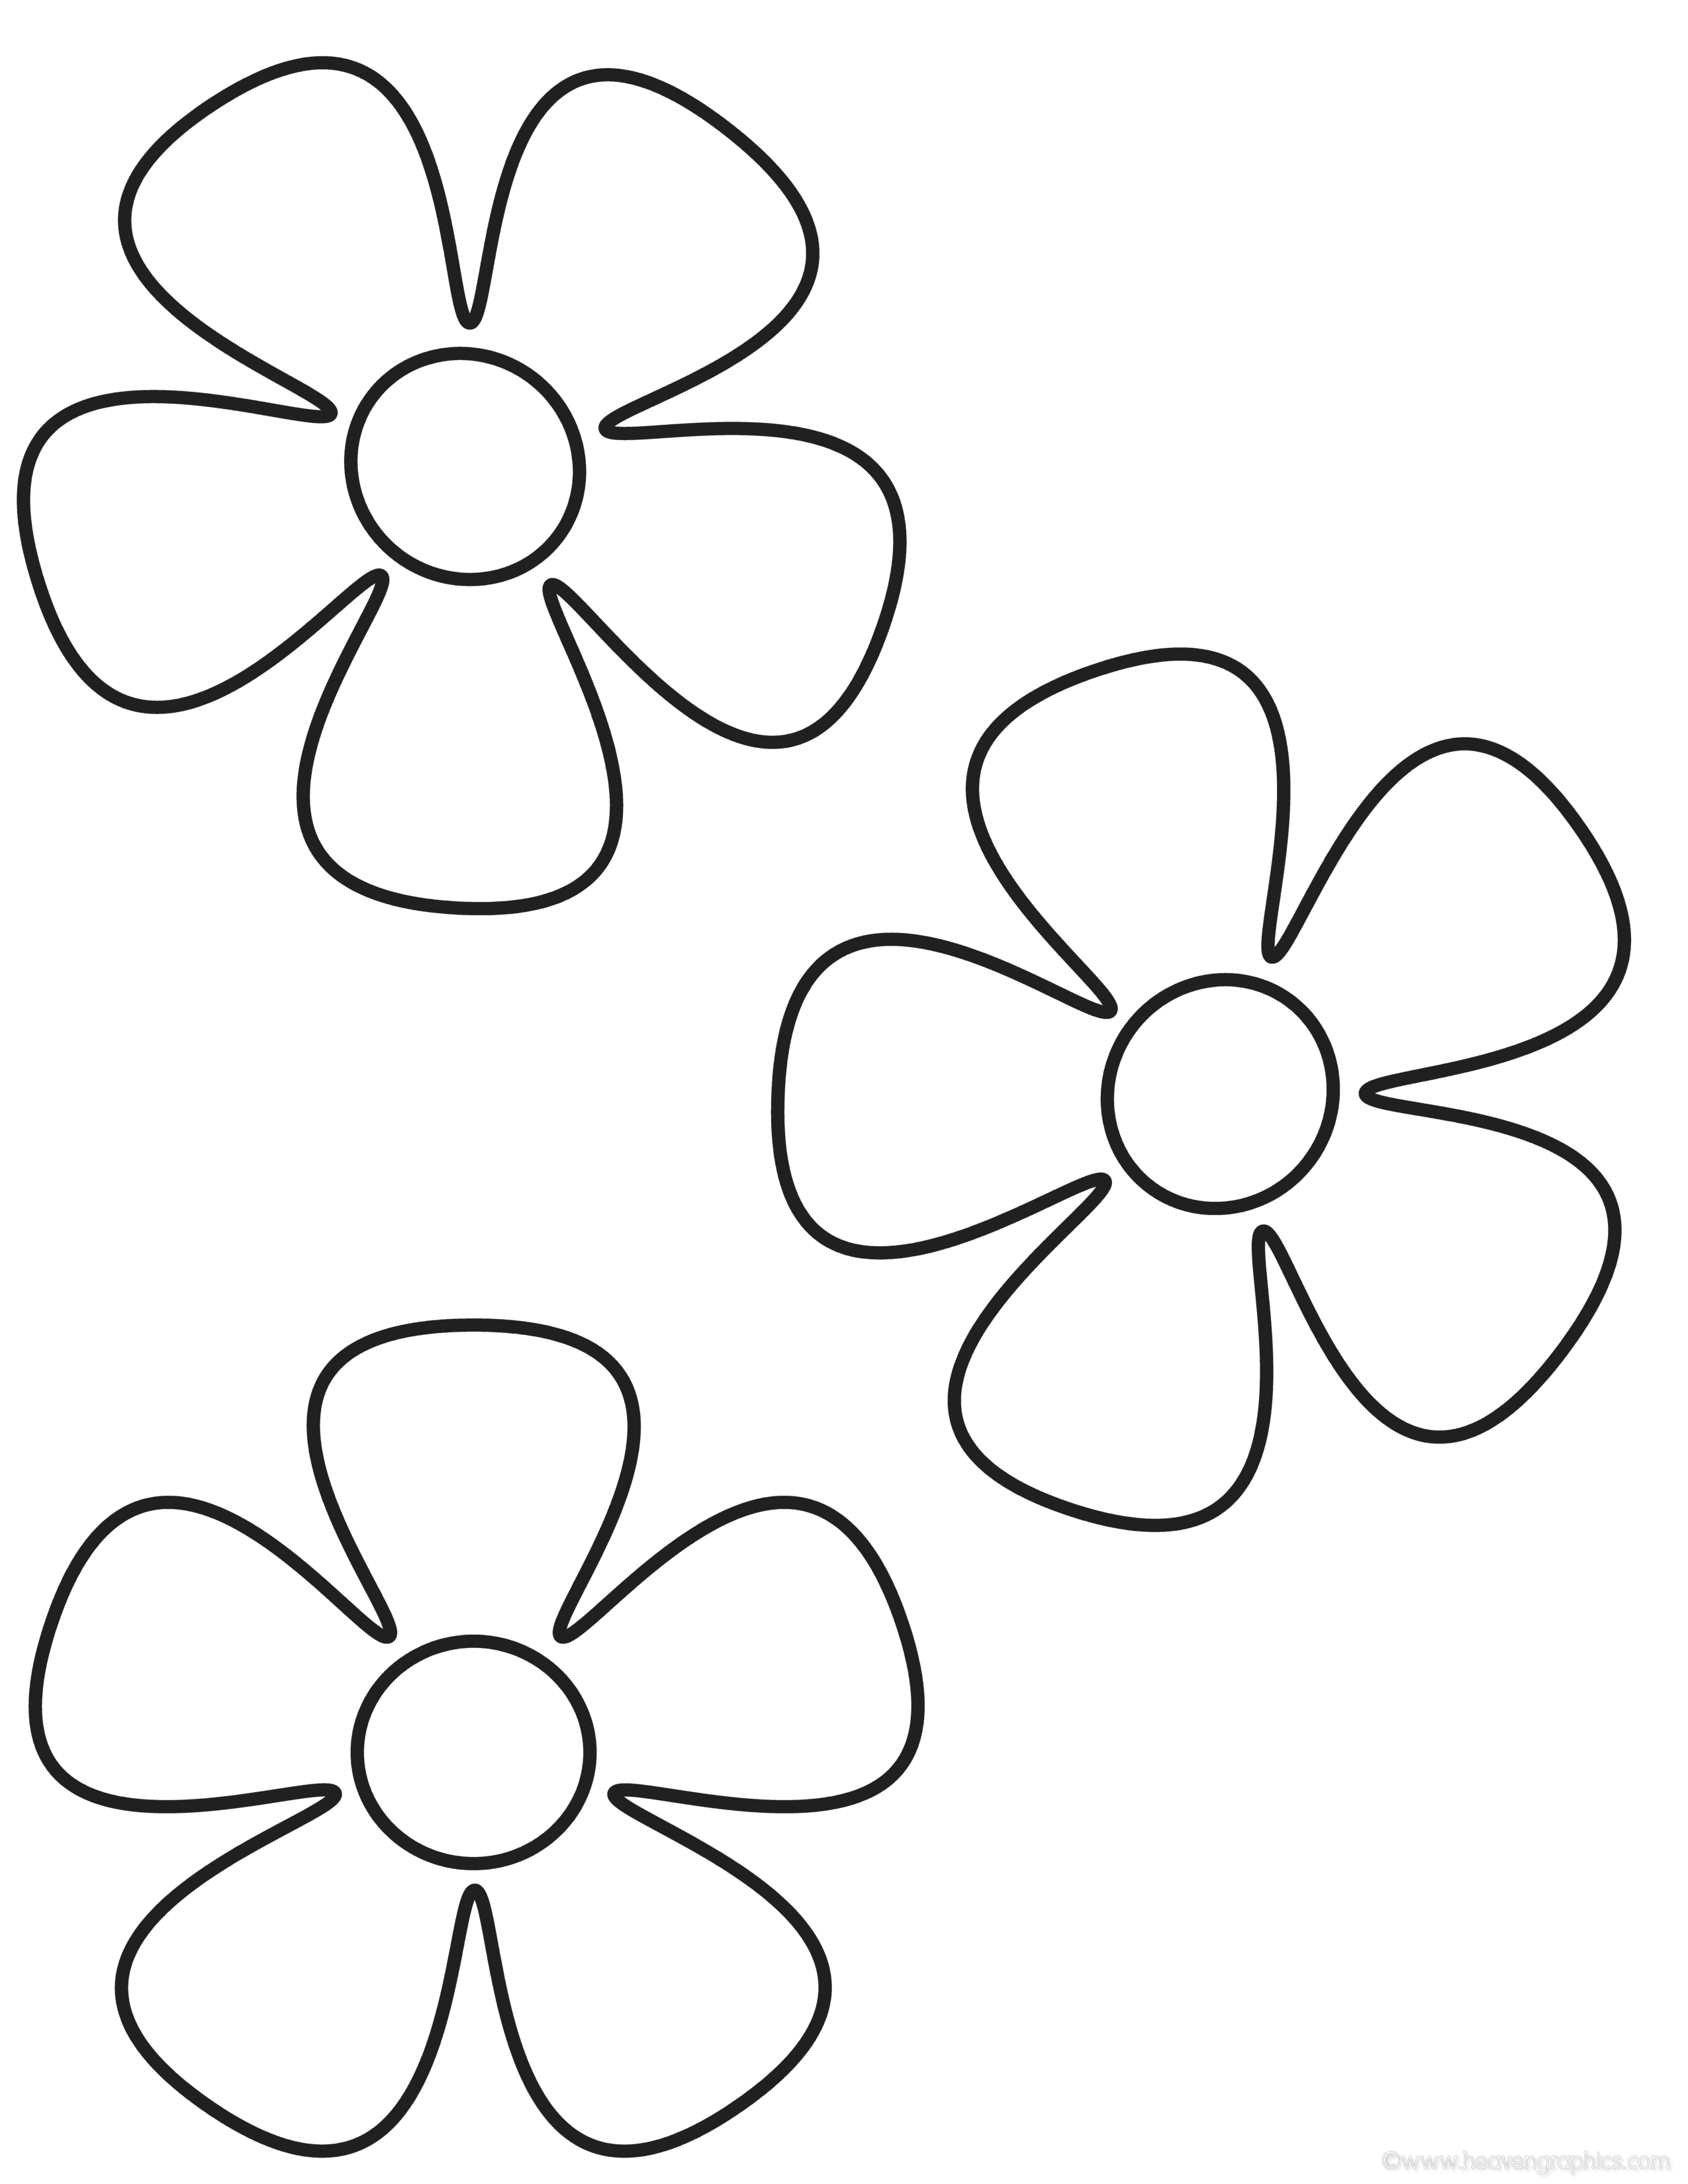 free printable flowers to color free printable flower coloring pages for kids cool2bkids color flowers free printable to